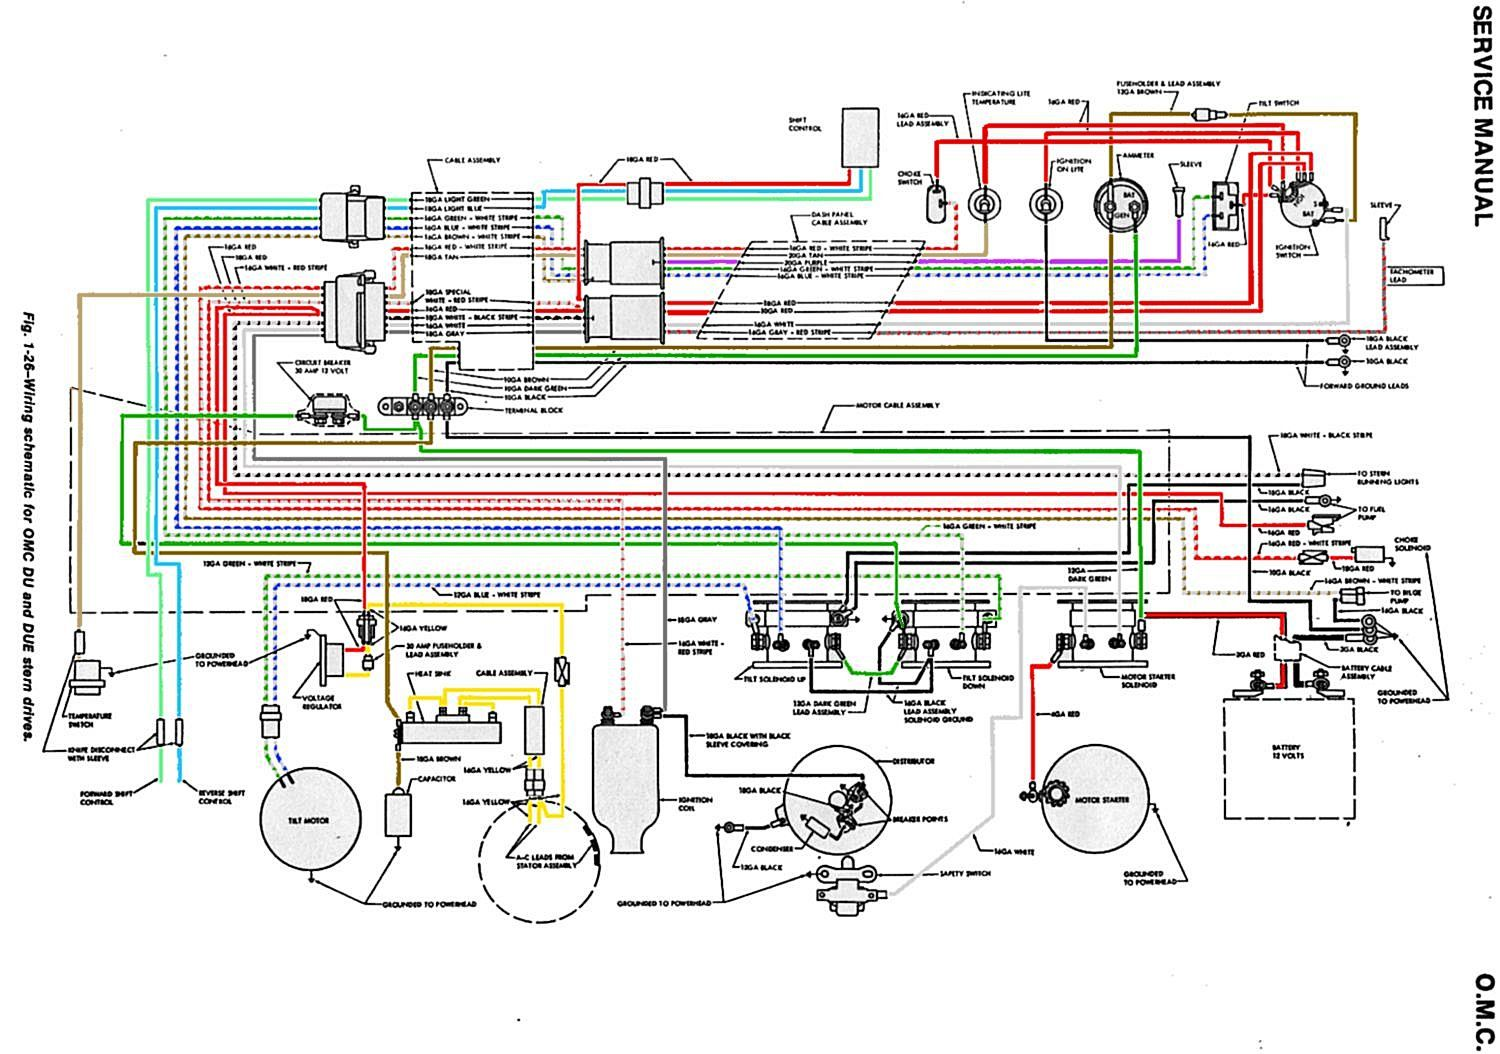 65 68_OMC_Wiring_Schematic omc boat technical info omc wiring harness diagram at gsmx.co